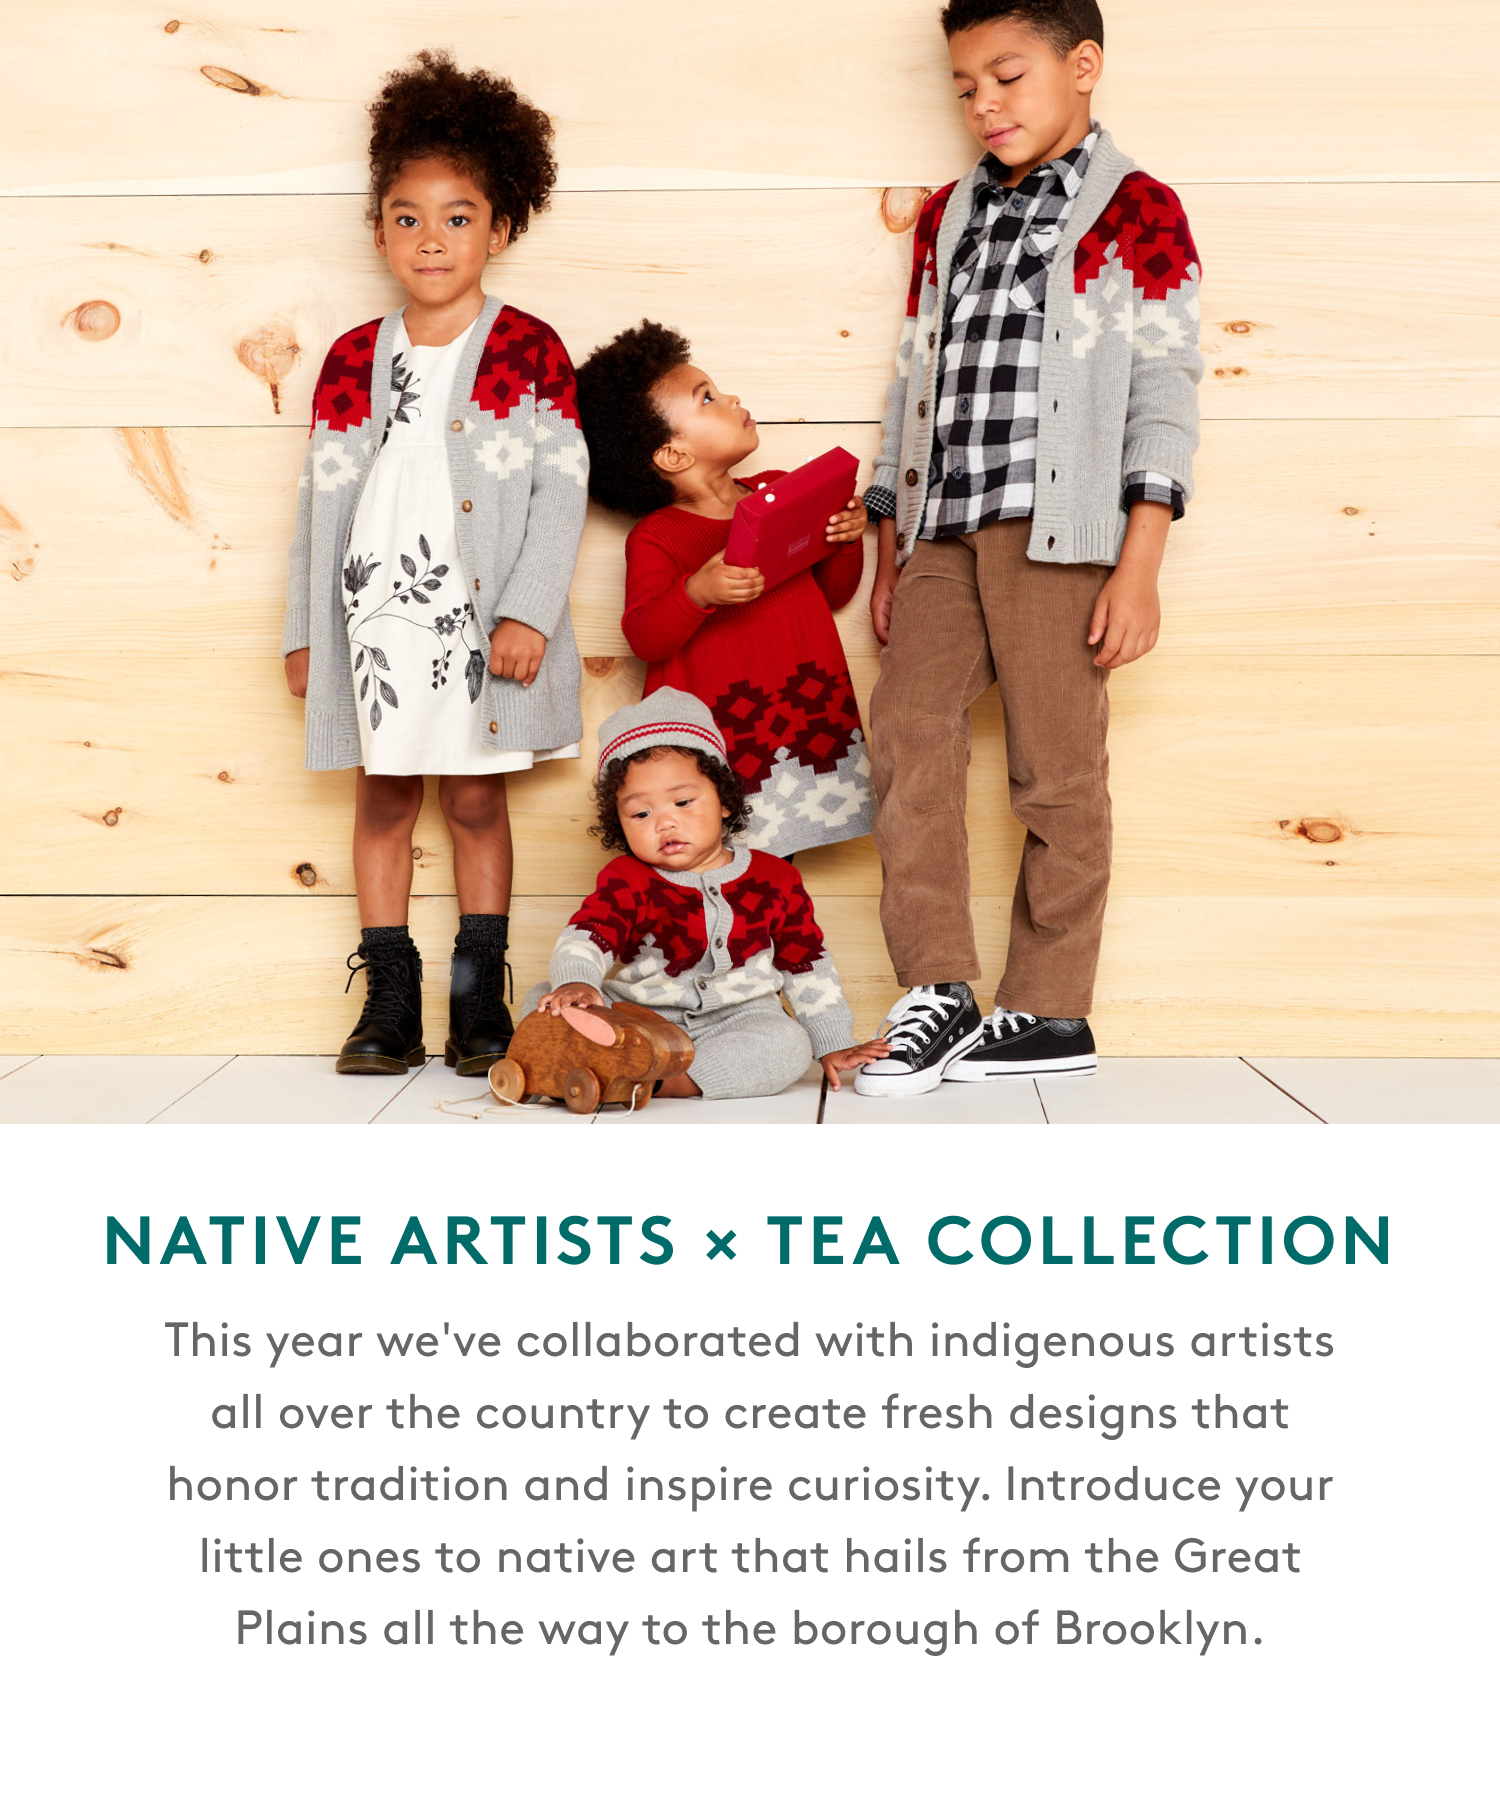 native artists x tea collection